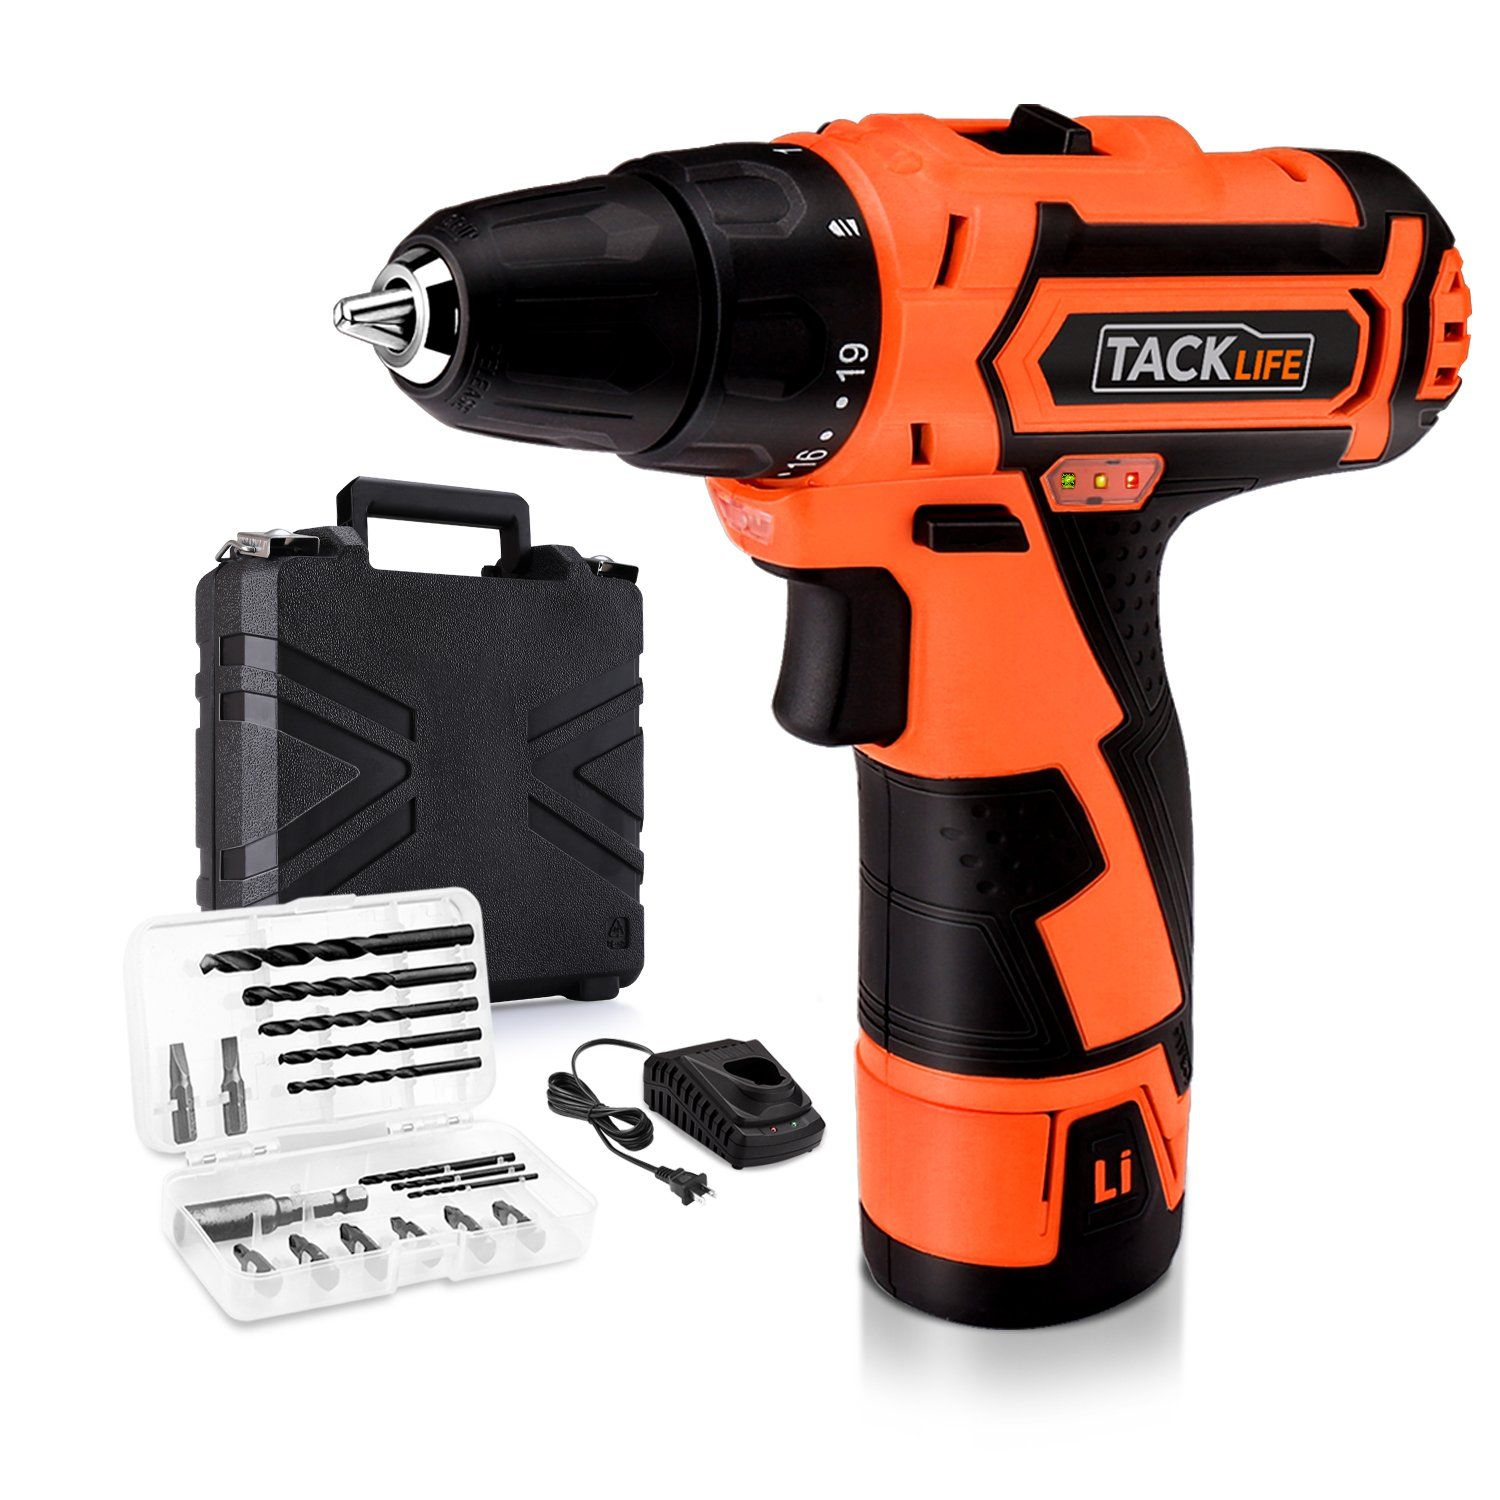 Tacklife Pcd02b 12v Lithium Ion Cordless Drill Driver Max Torque 25n M Variable Speed 19 1 Torque Setting With Led Drill Cordless Drill Cordless Drill Reviews